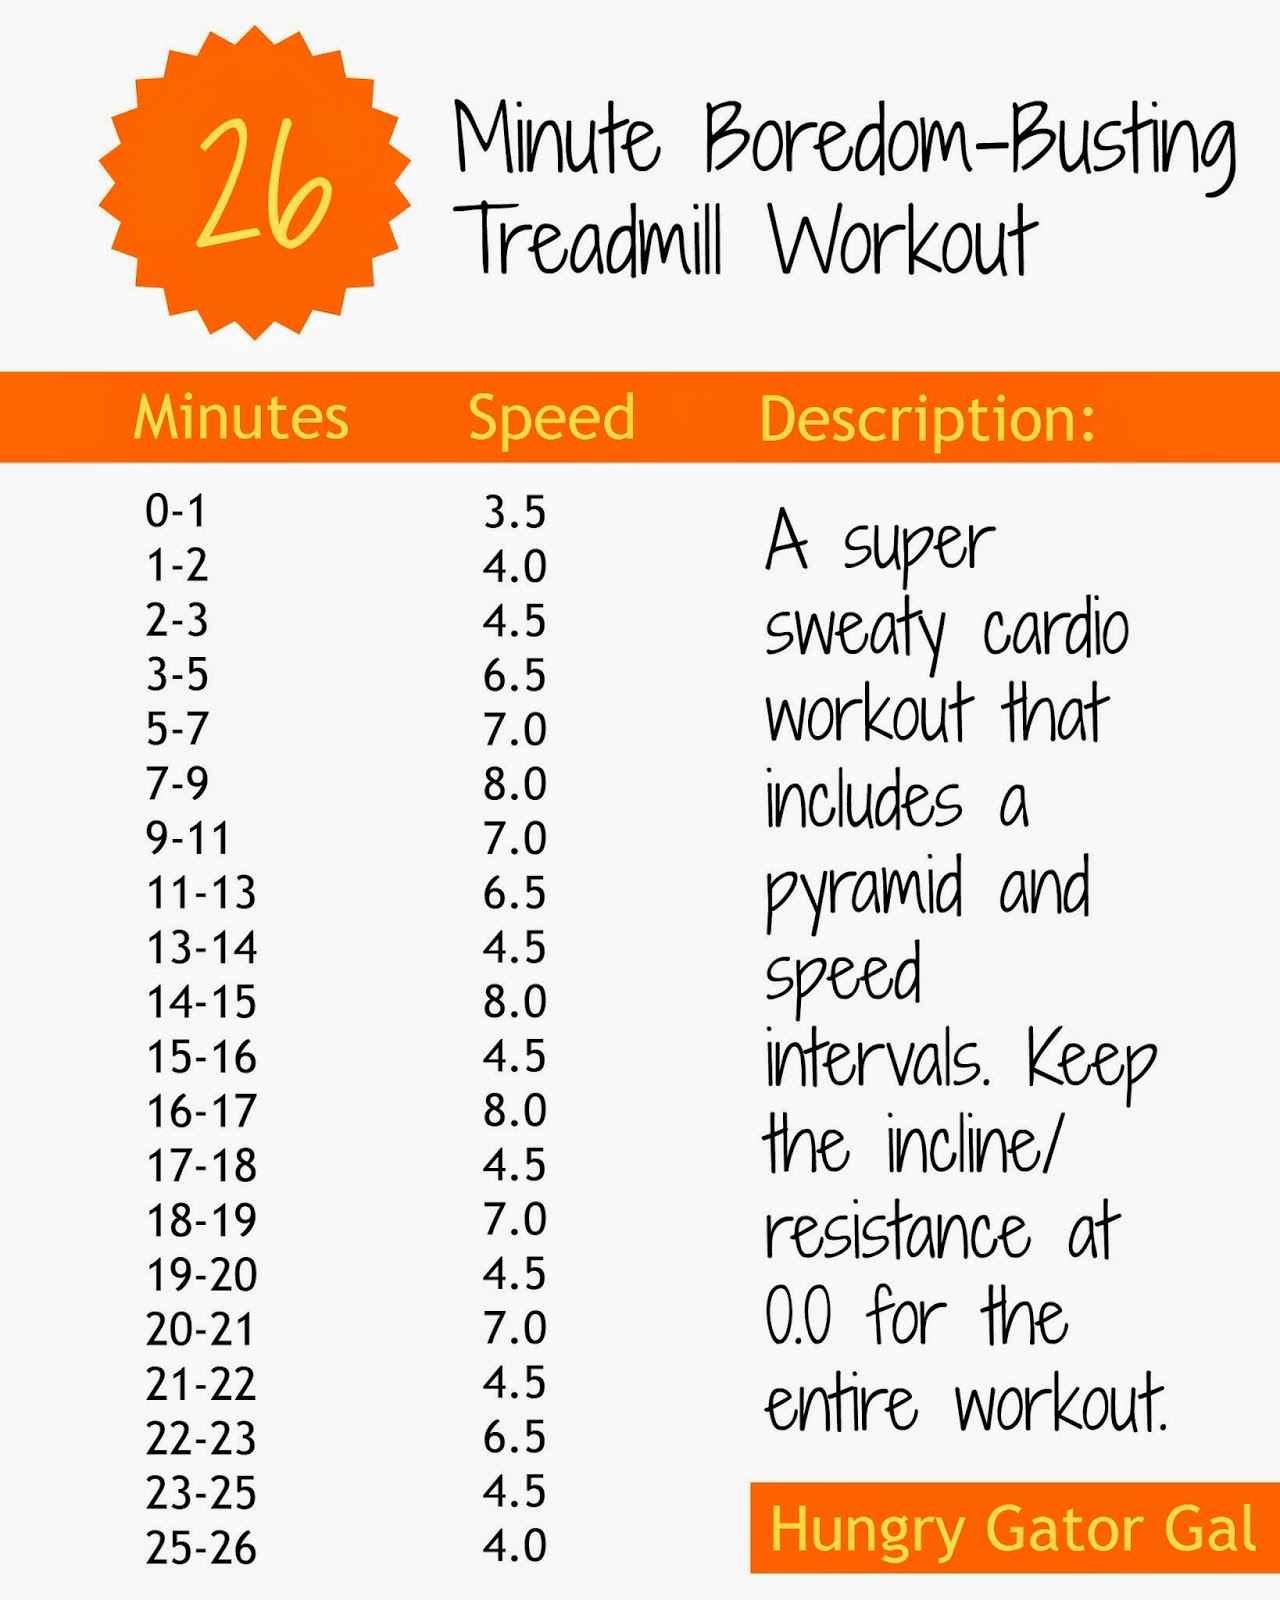 26-Minute Boredom-Busting Treadmill Workout from Hungry Gator Gal